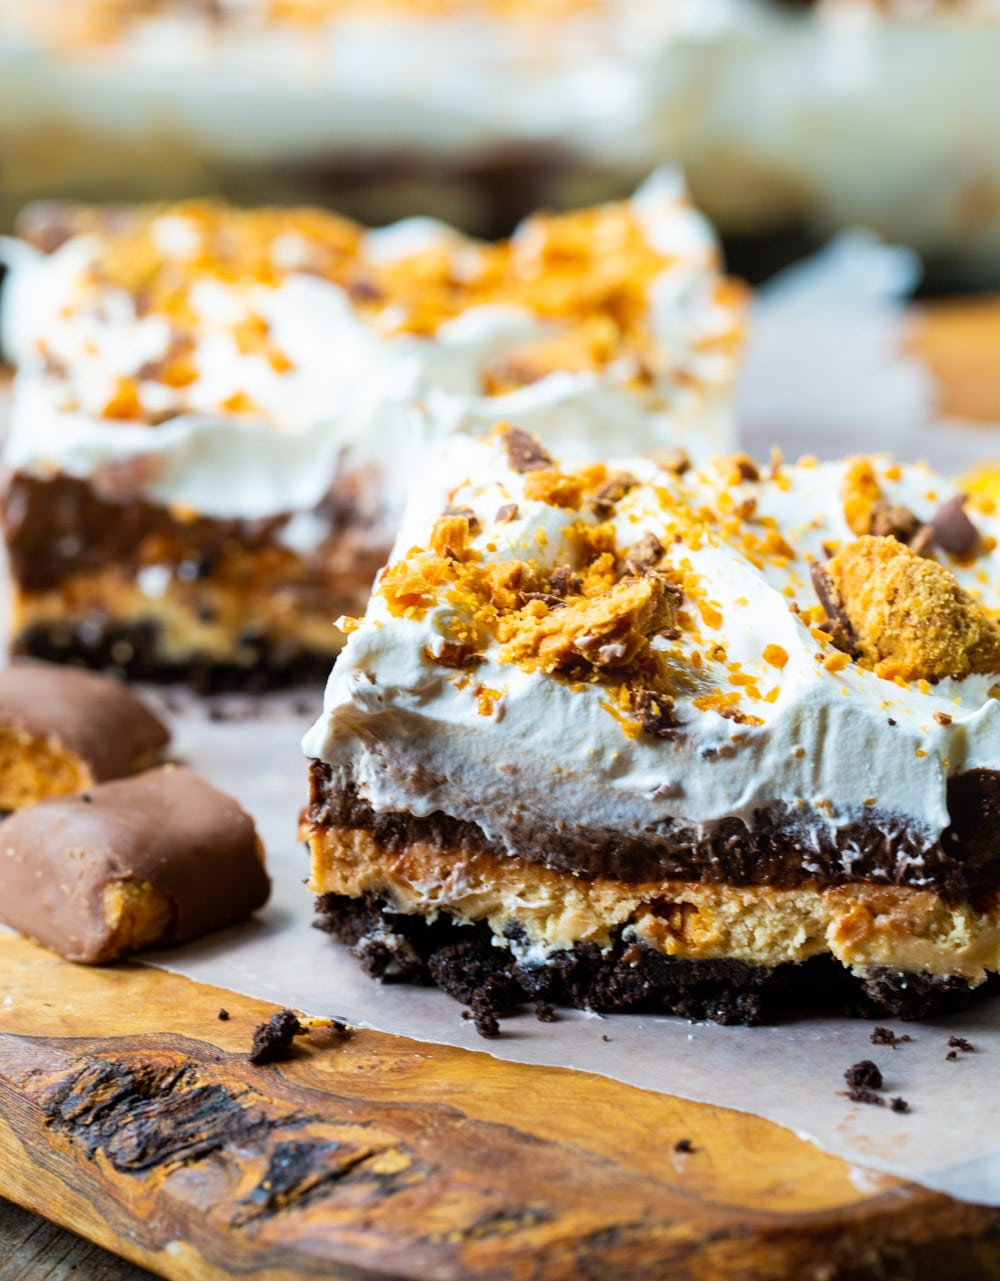 Two Butterfinger Lush slices.